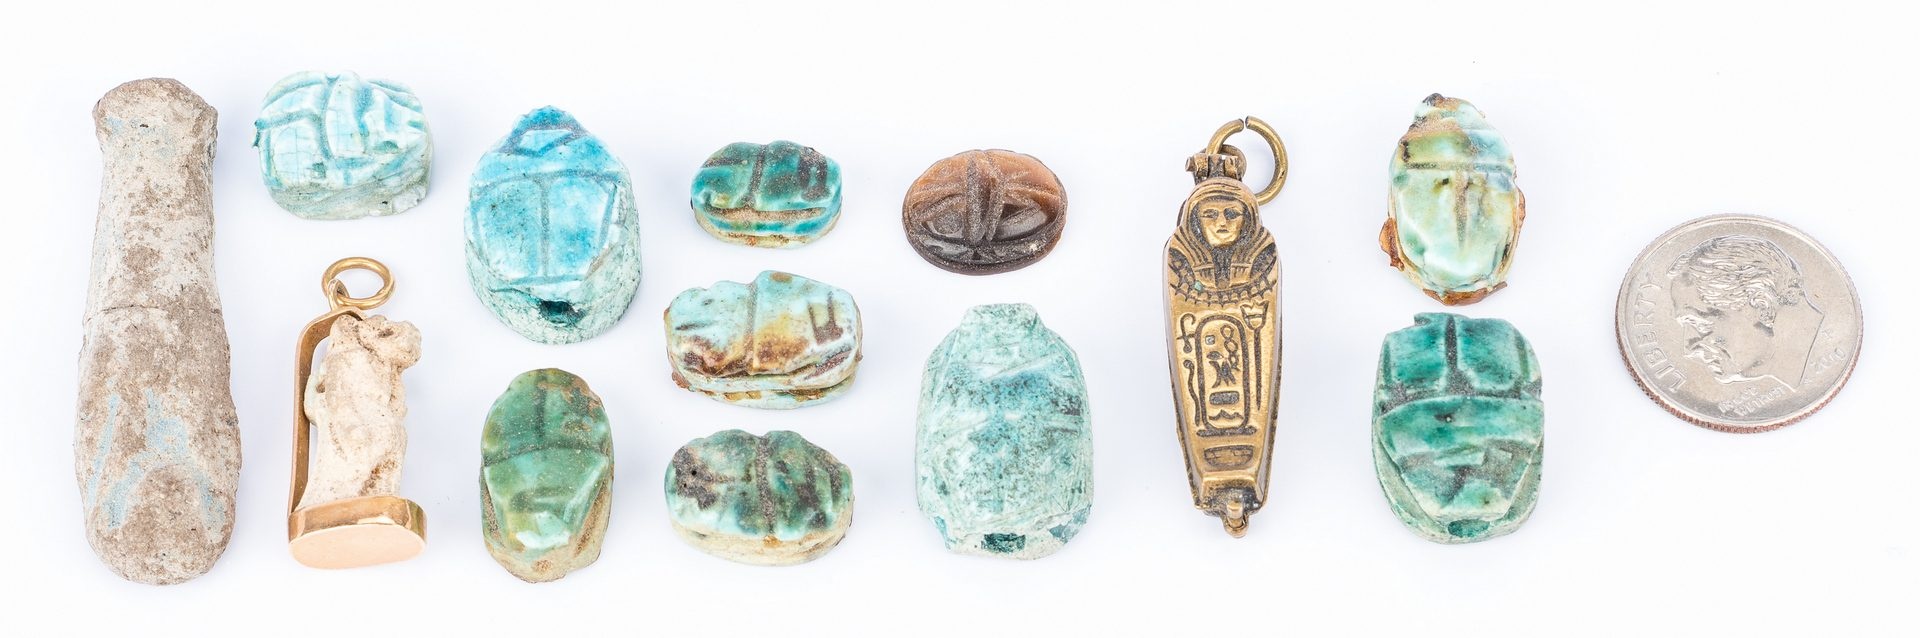 Lot 301: 13 Egyptian Items, incl. Jewelry